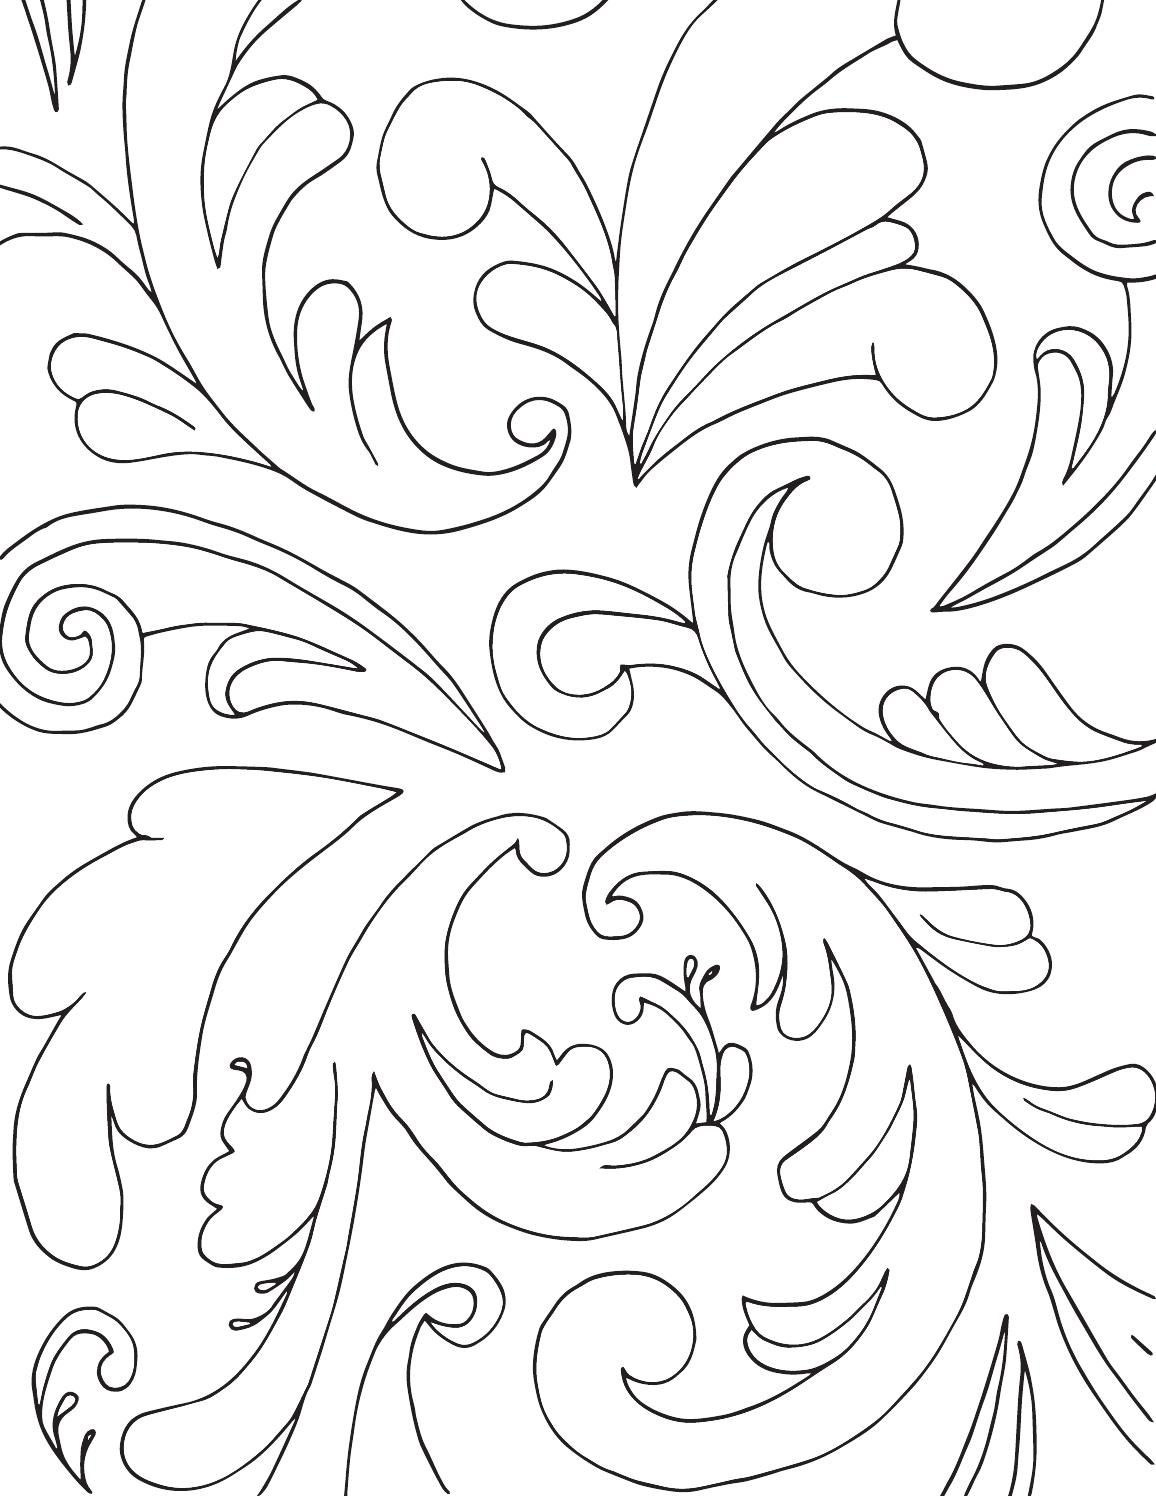 Rosemaling Coloring Book1 Paper Art Color Coloring Pages Paper Art